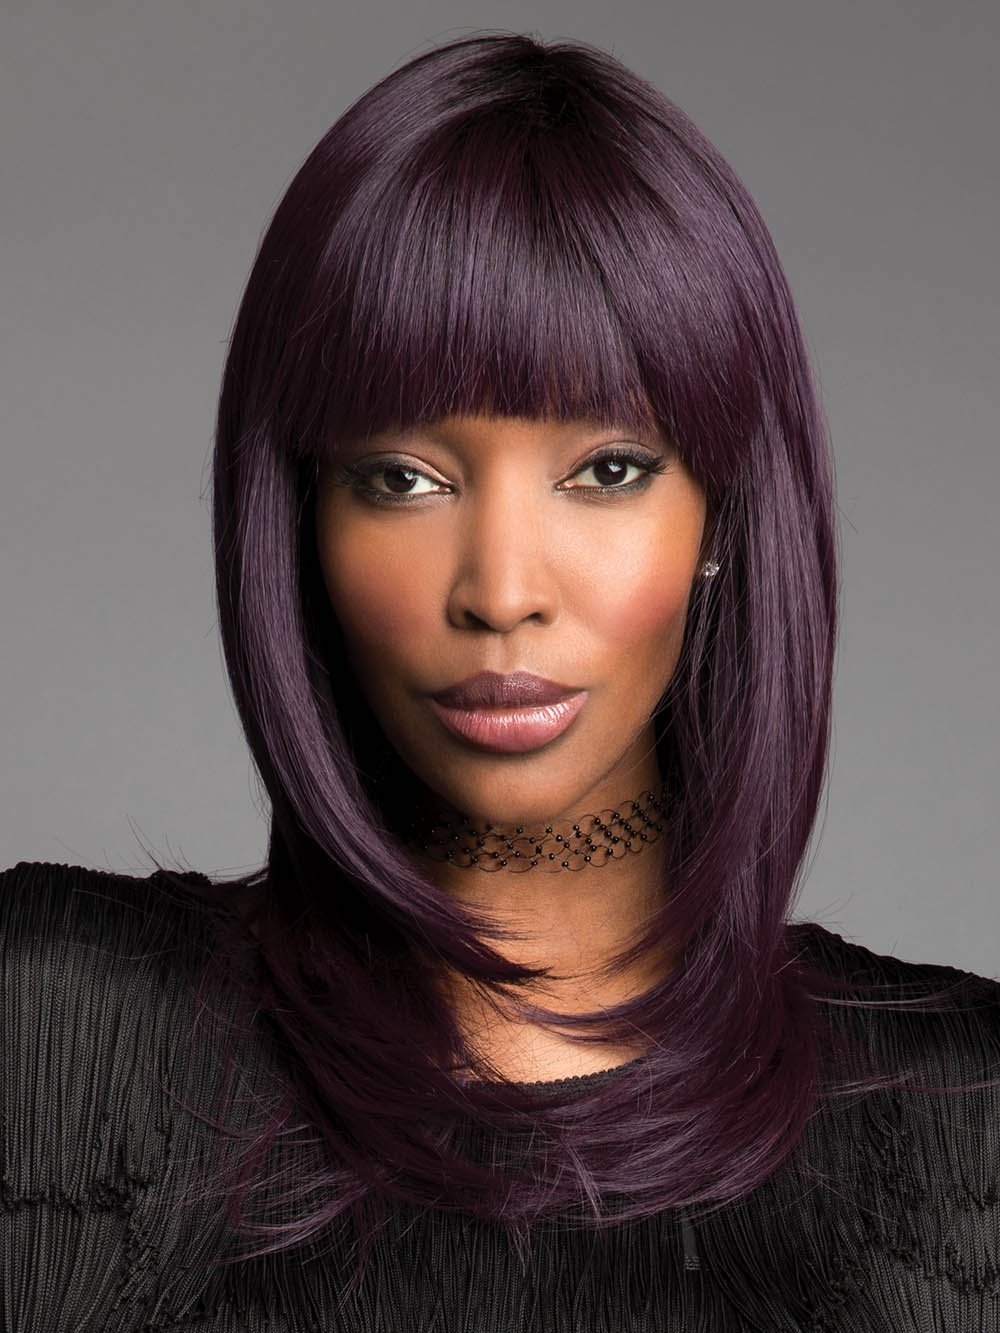 Spellbound By Revlon Colored Wig Bob Cut Hair Extensions